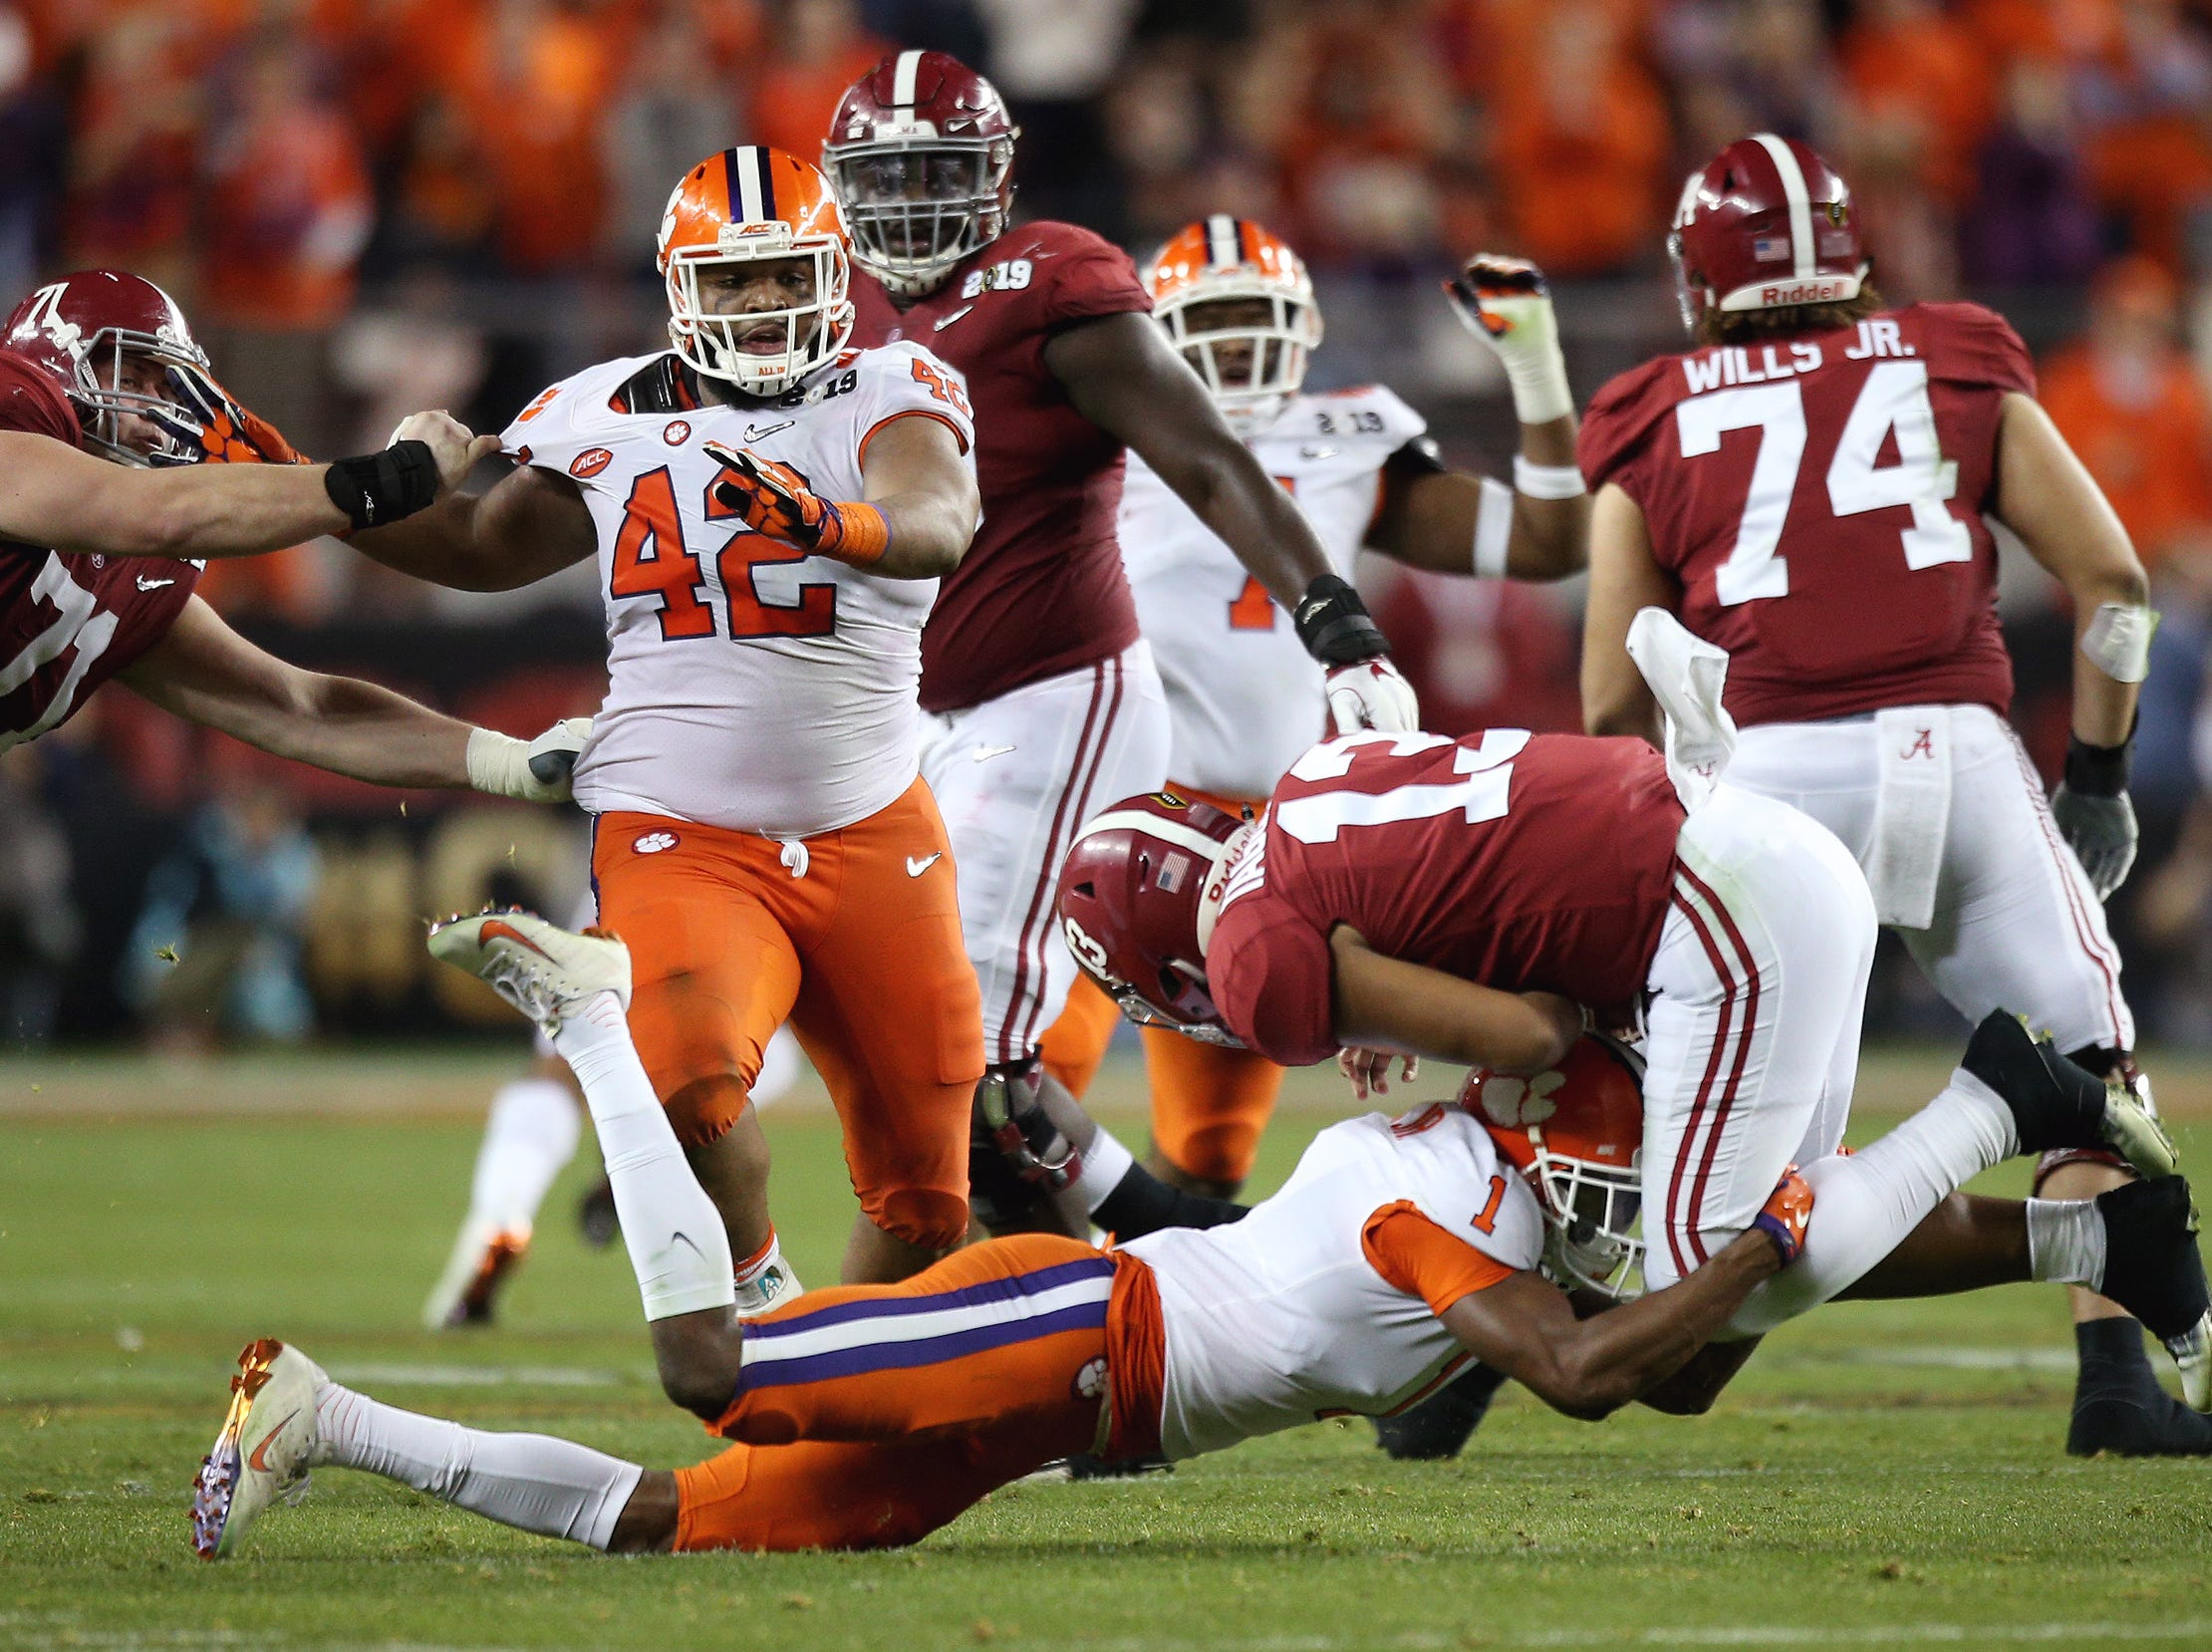 Jan 7, 2019; Santa Clara, CA, USA; Clemson Tigers cornerback Trayvon Mullen (1) tackles Alabama Crimson Tide quarterback Tua Tagovailoa (13) in the second quarter during the 2019 College Football Playoff Championship game at Levi's Stadium. Mandatory Credit: Cary Edmondson-USA TODAY Sports